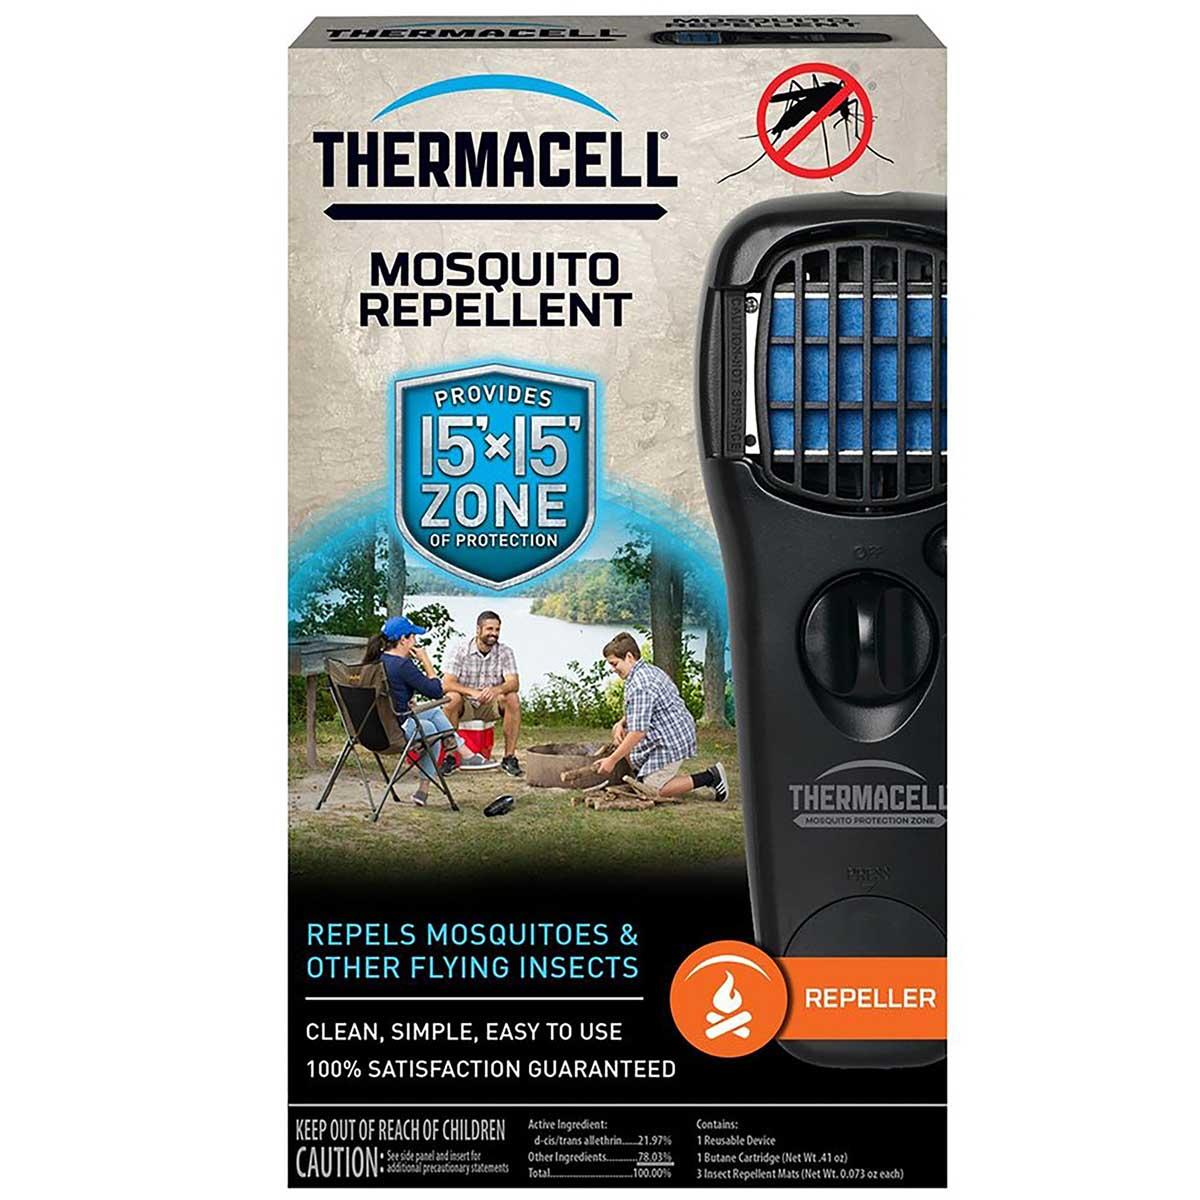 Thermacell Portable Mosquito Repeller, Black_3.jpg